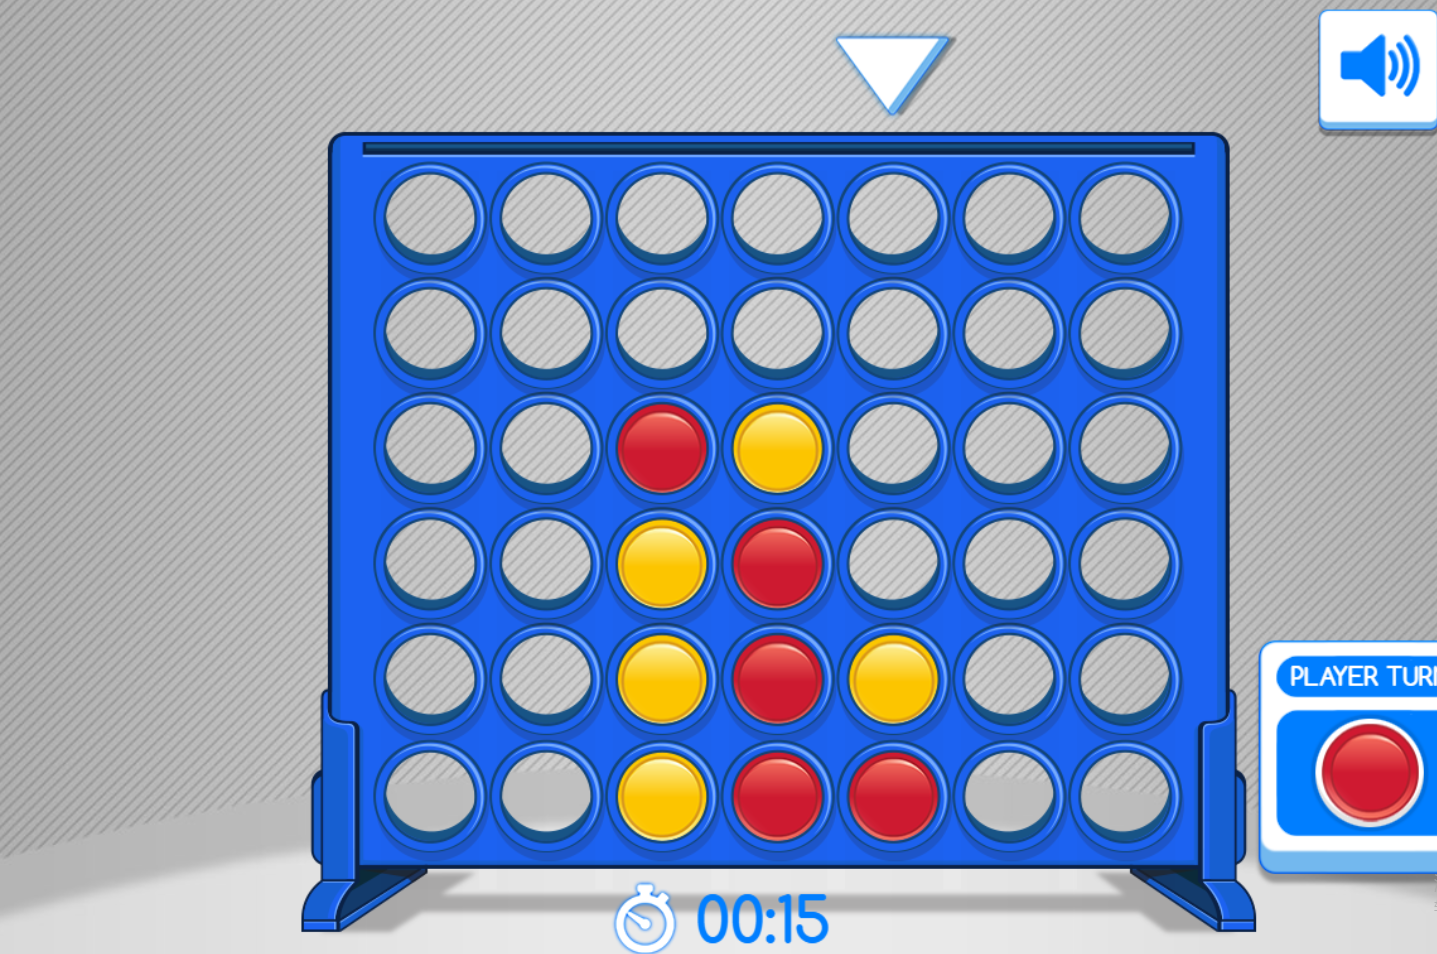 Connect 4: Multiplayer - A Free Girl Game on GirlsGoGames.com